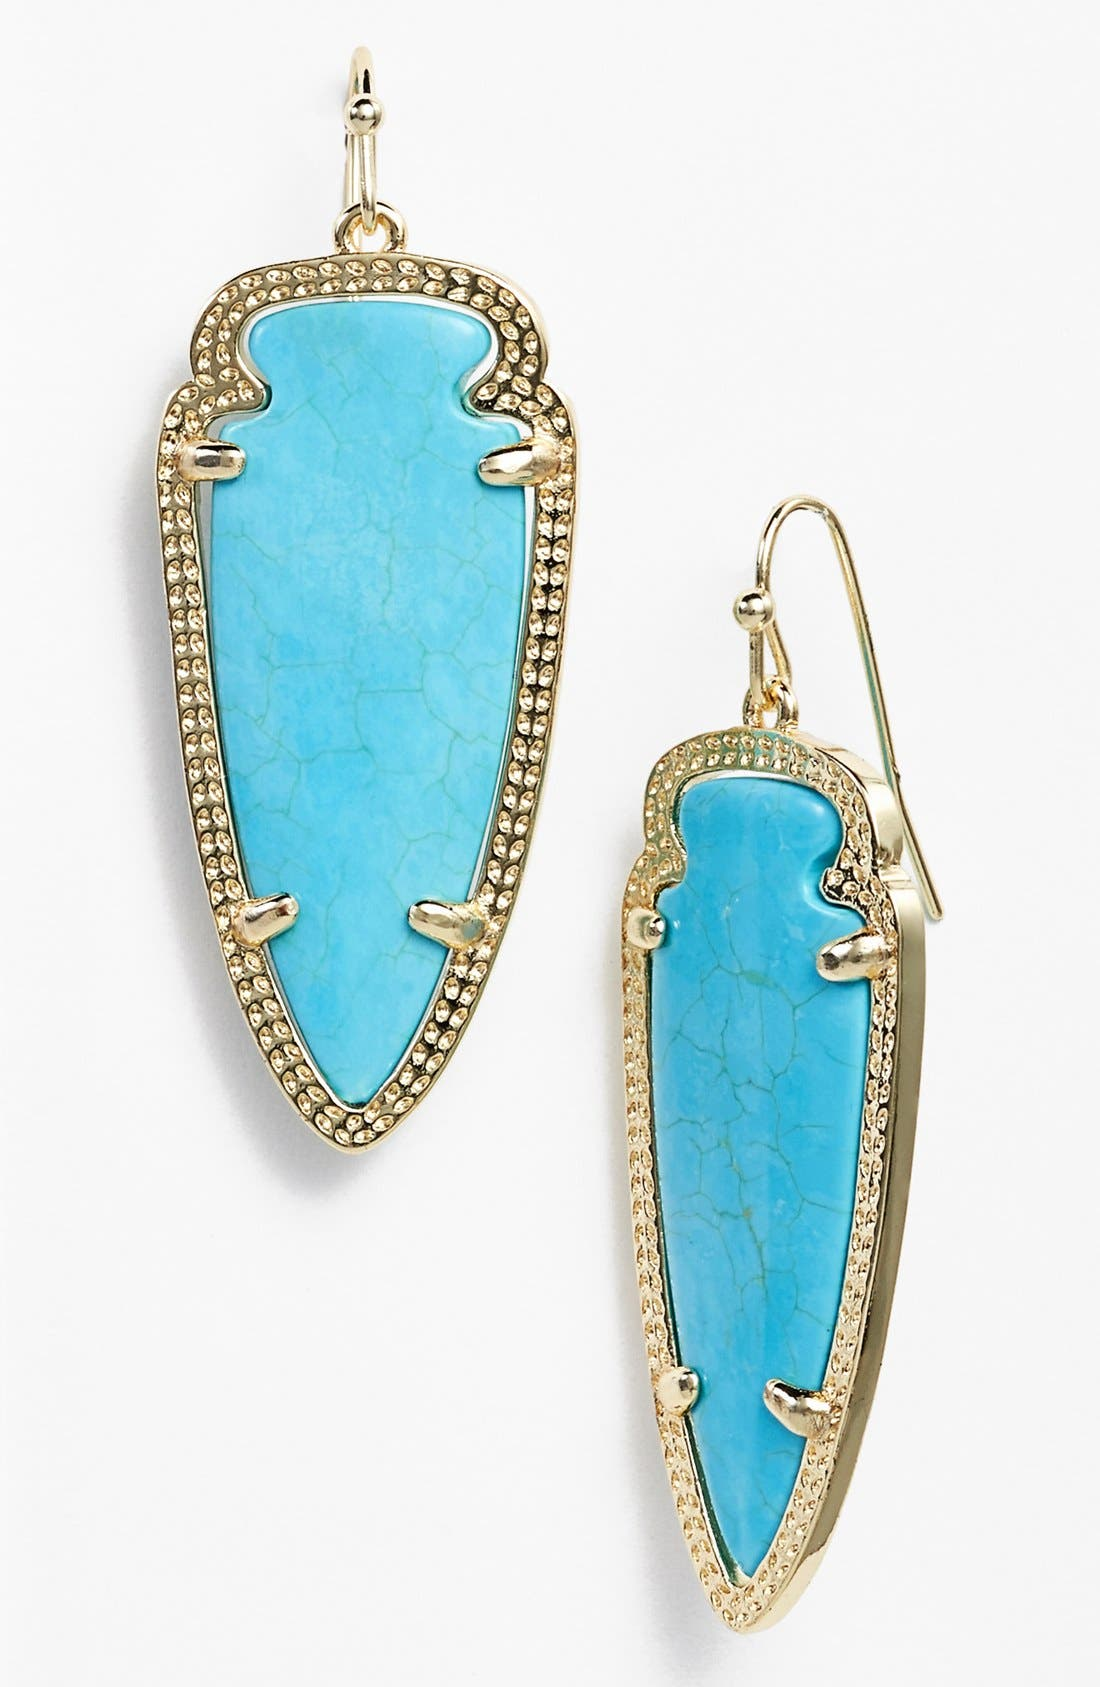 Alternate Image 1 Selected - Kendra Scott 'Sky Spear' Small Statement Earrings